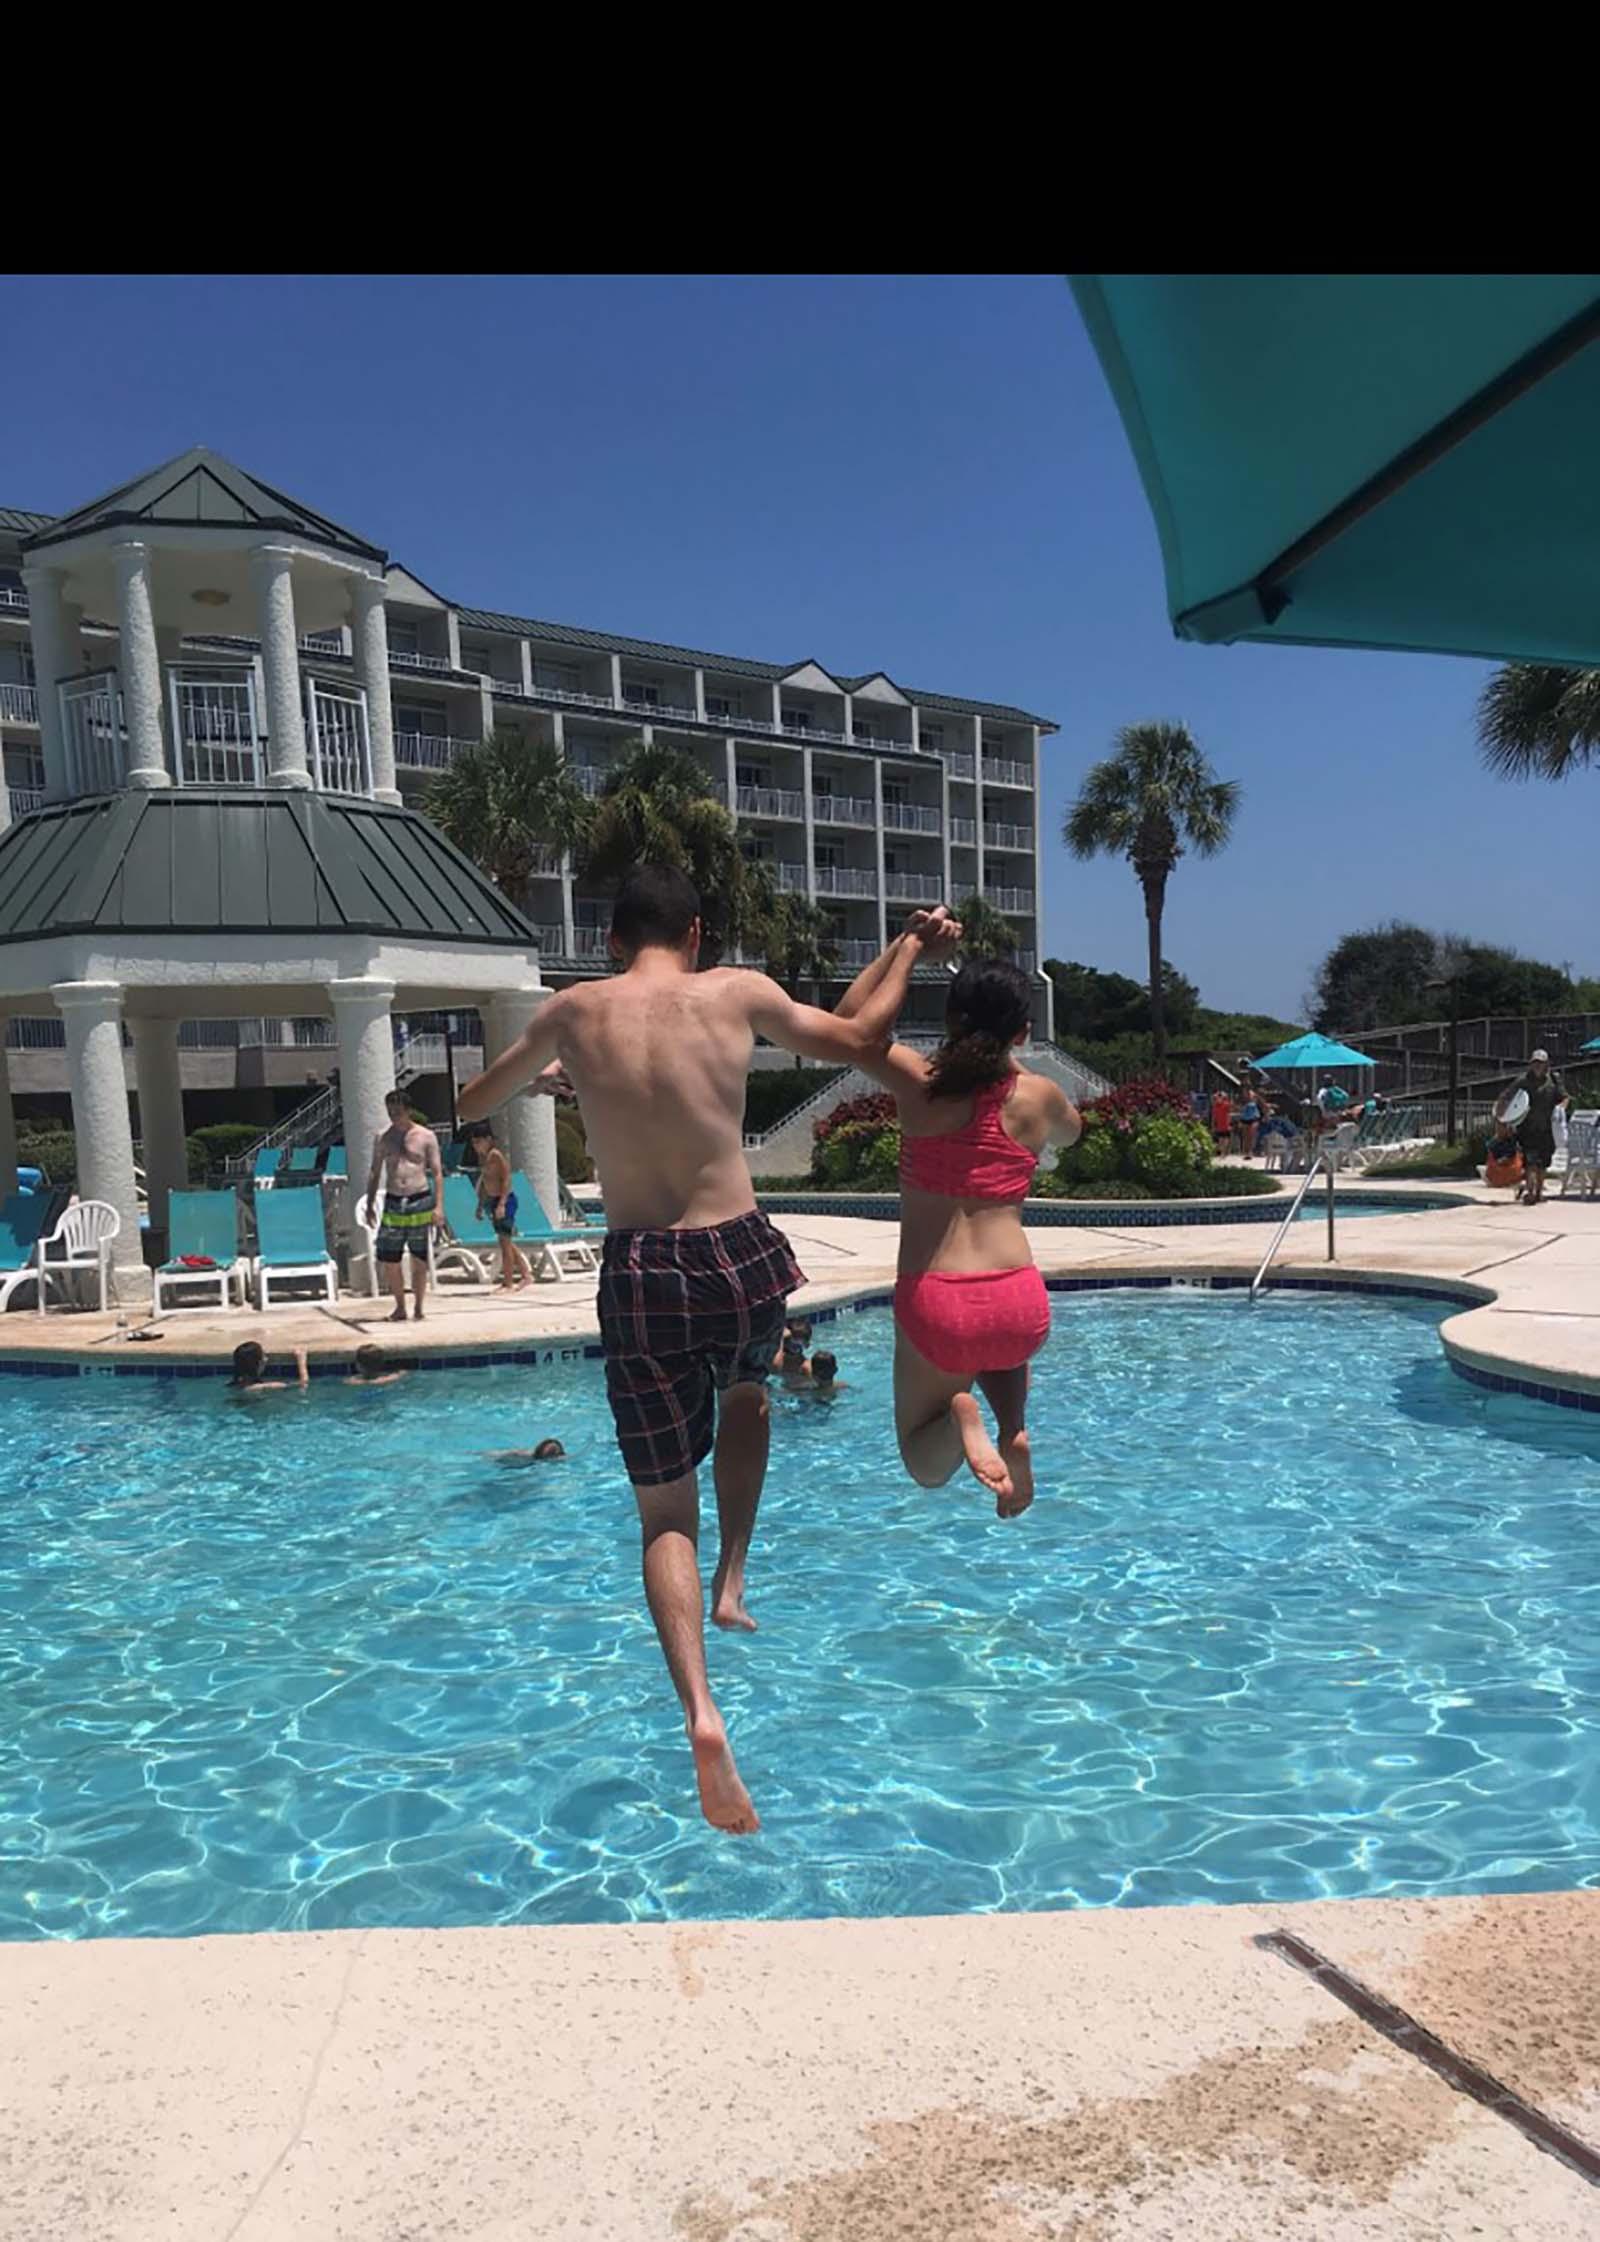 Siblings jumping into pool together